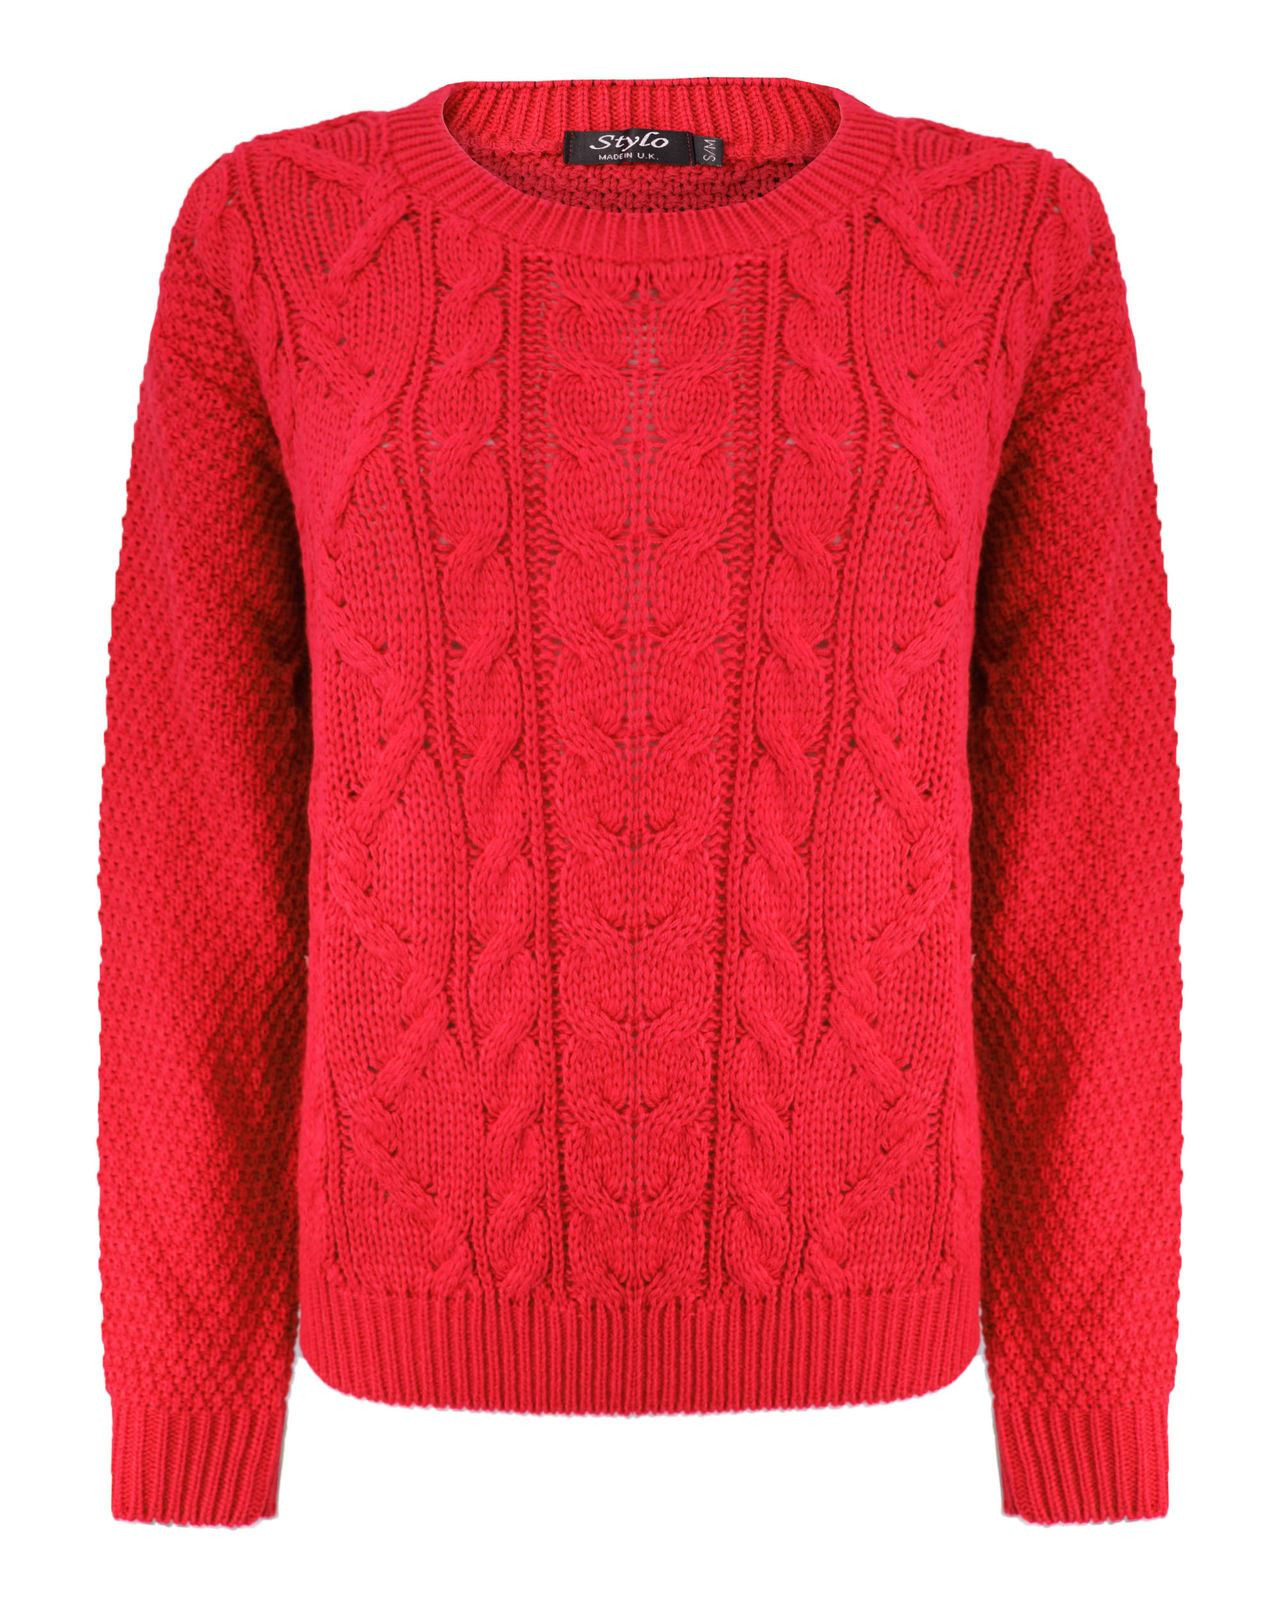 Fresh Red Cable Knit Jumper Womens Ladies Cable Knit Sweater Of Charming 49 Photos Ladies Cable Knit Sweater